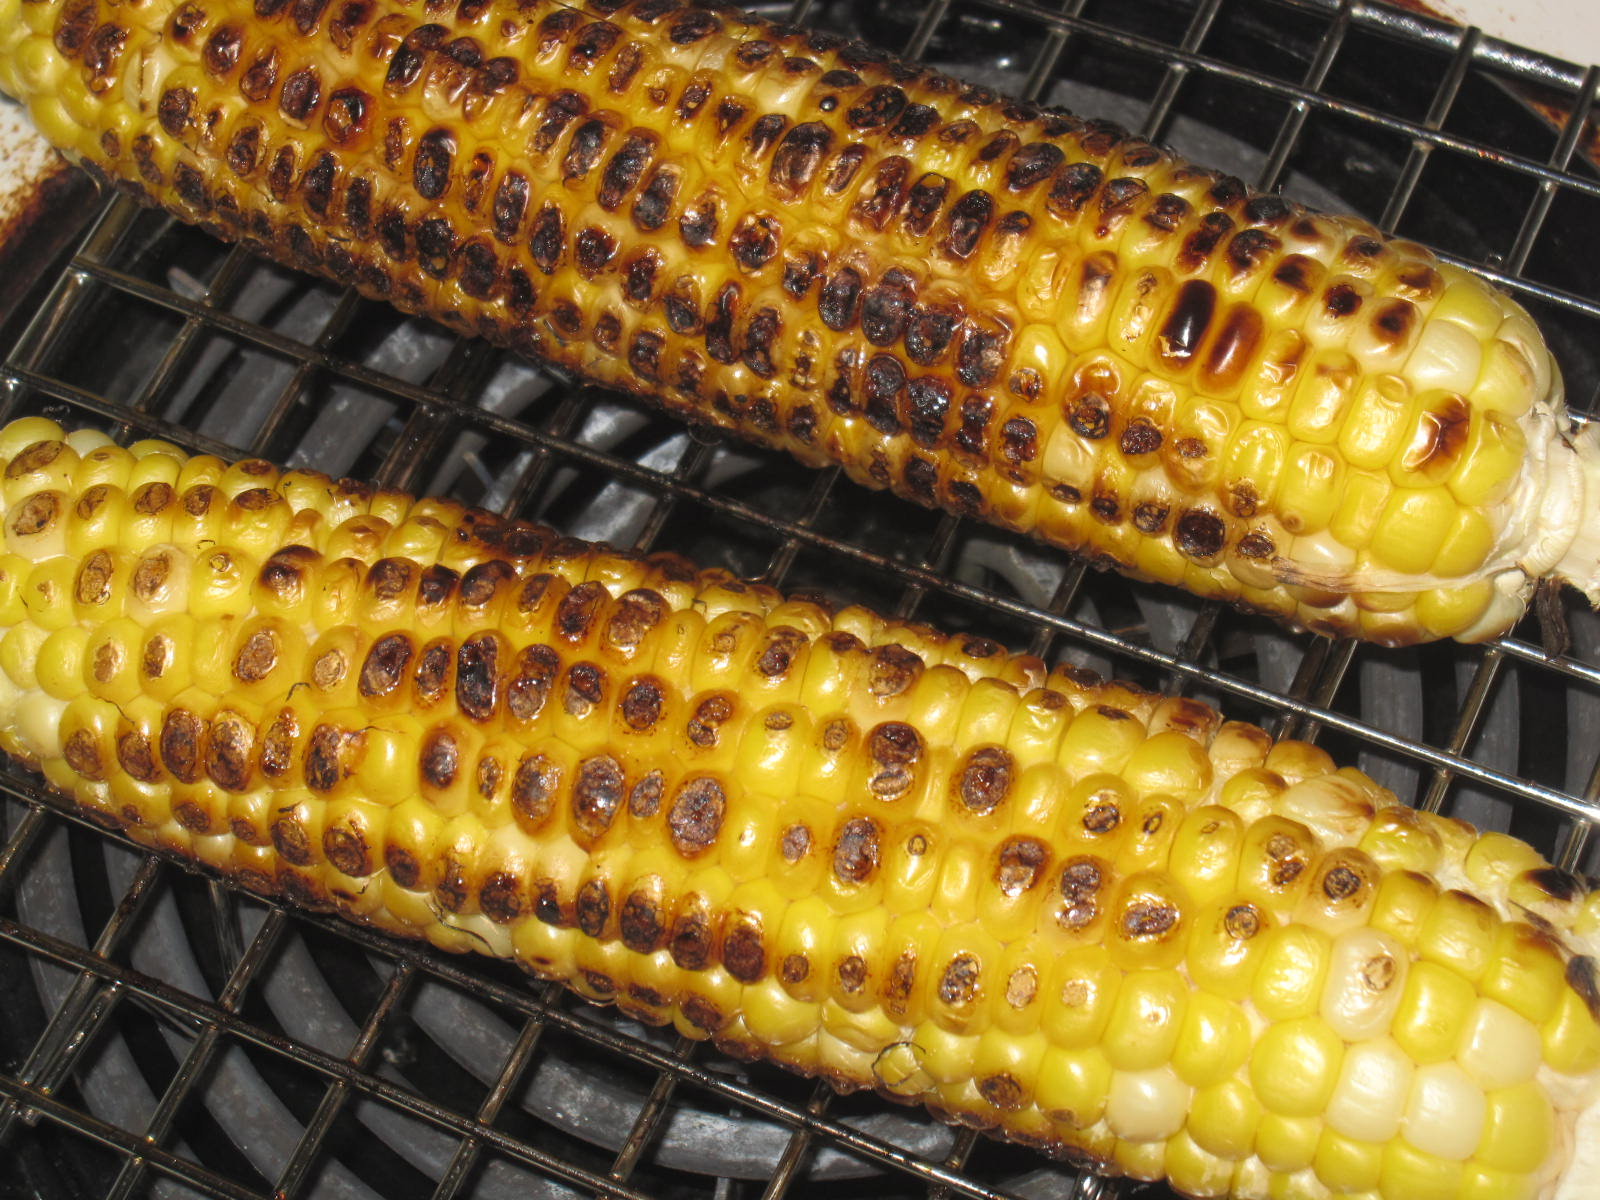 Essence-de-life: Grilled corn